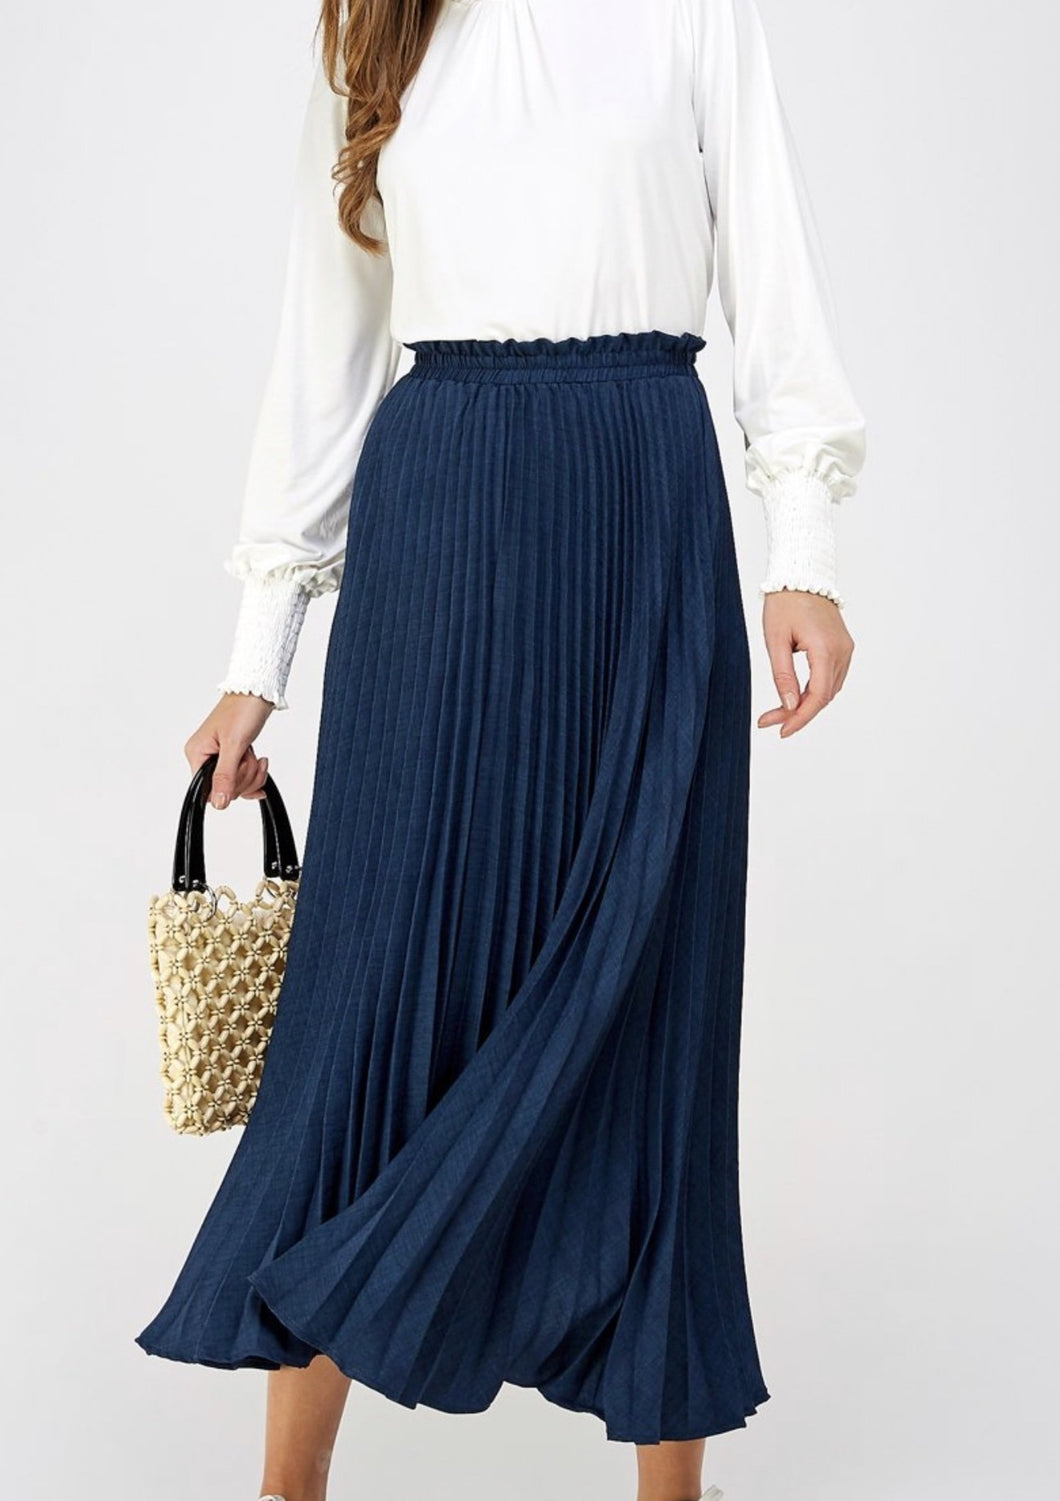 Faithful Washed Linen Pleated Skirt Style SK019 in Navy